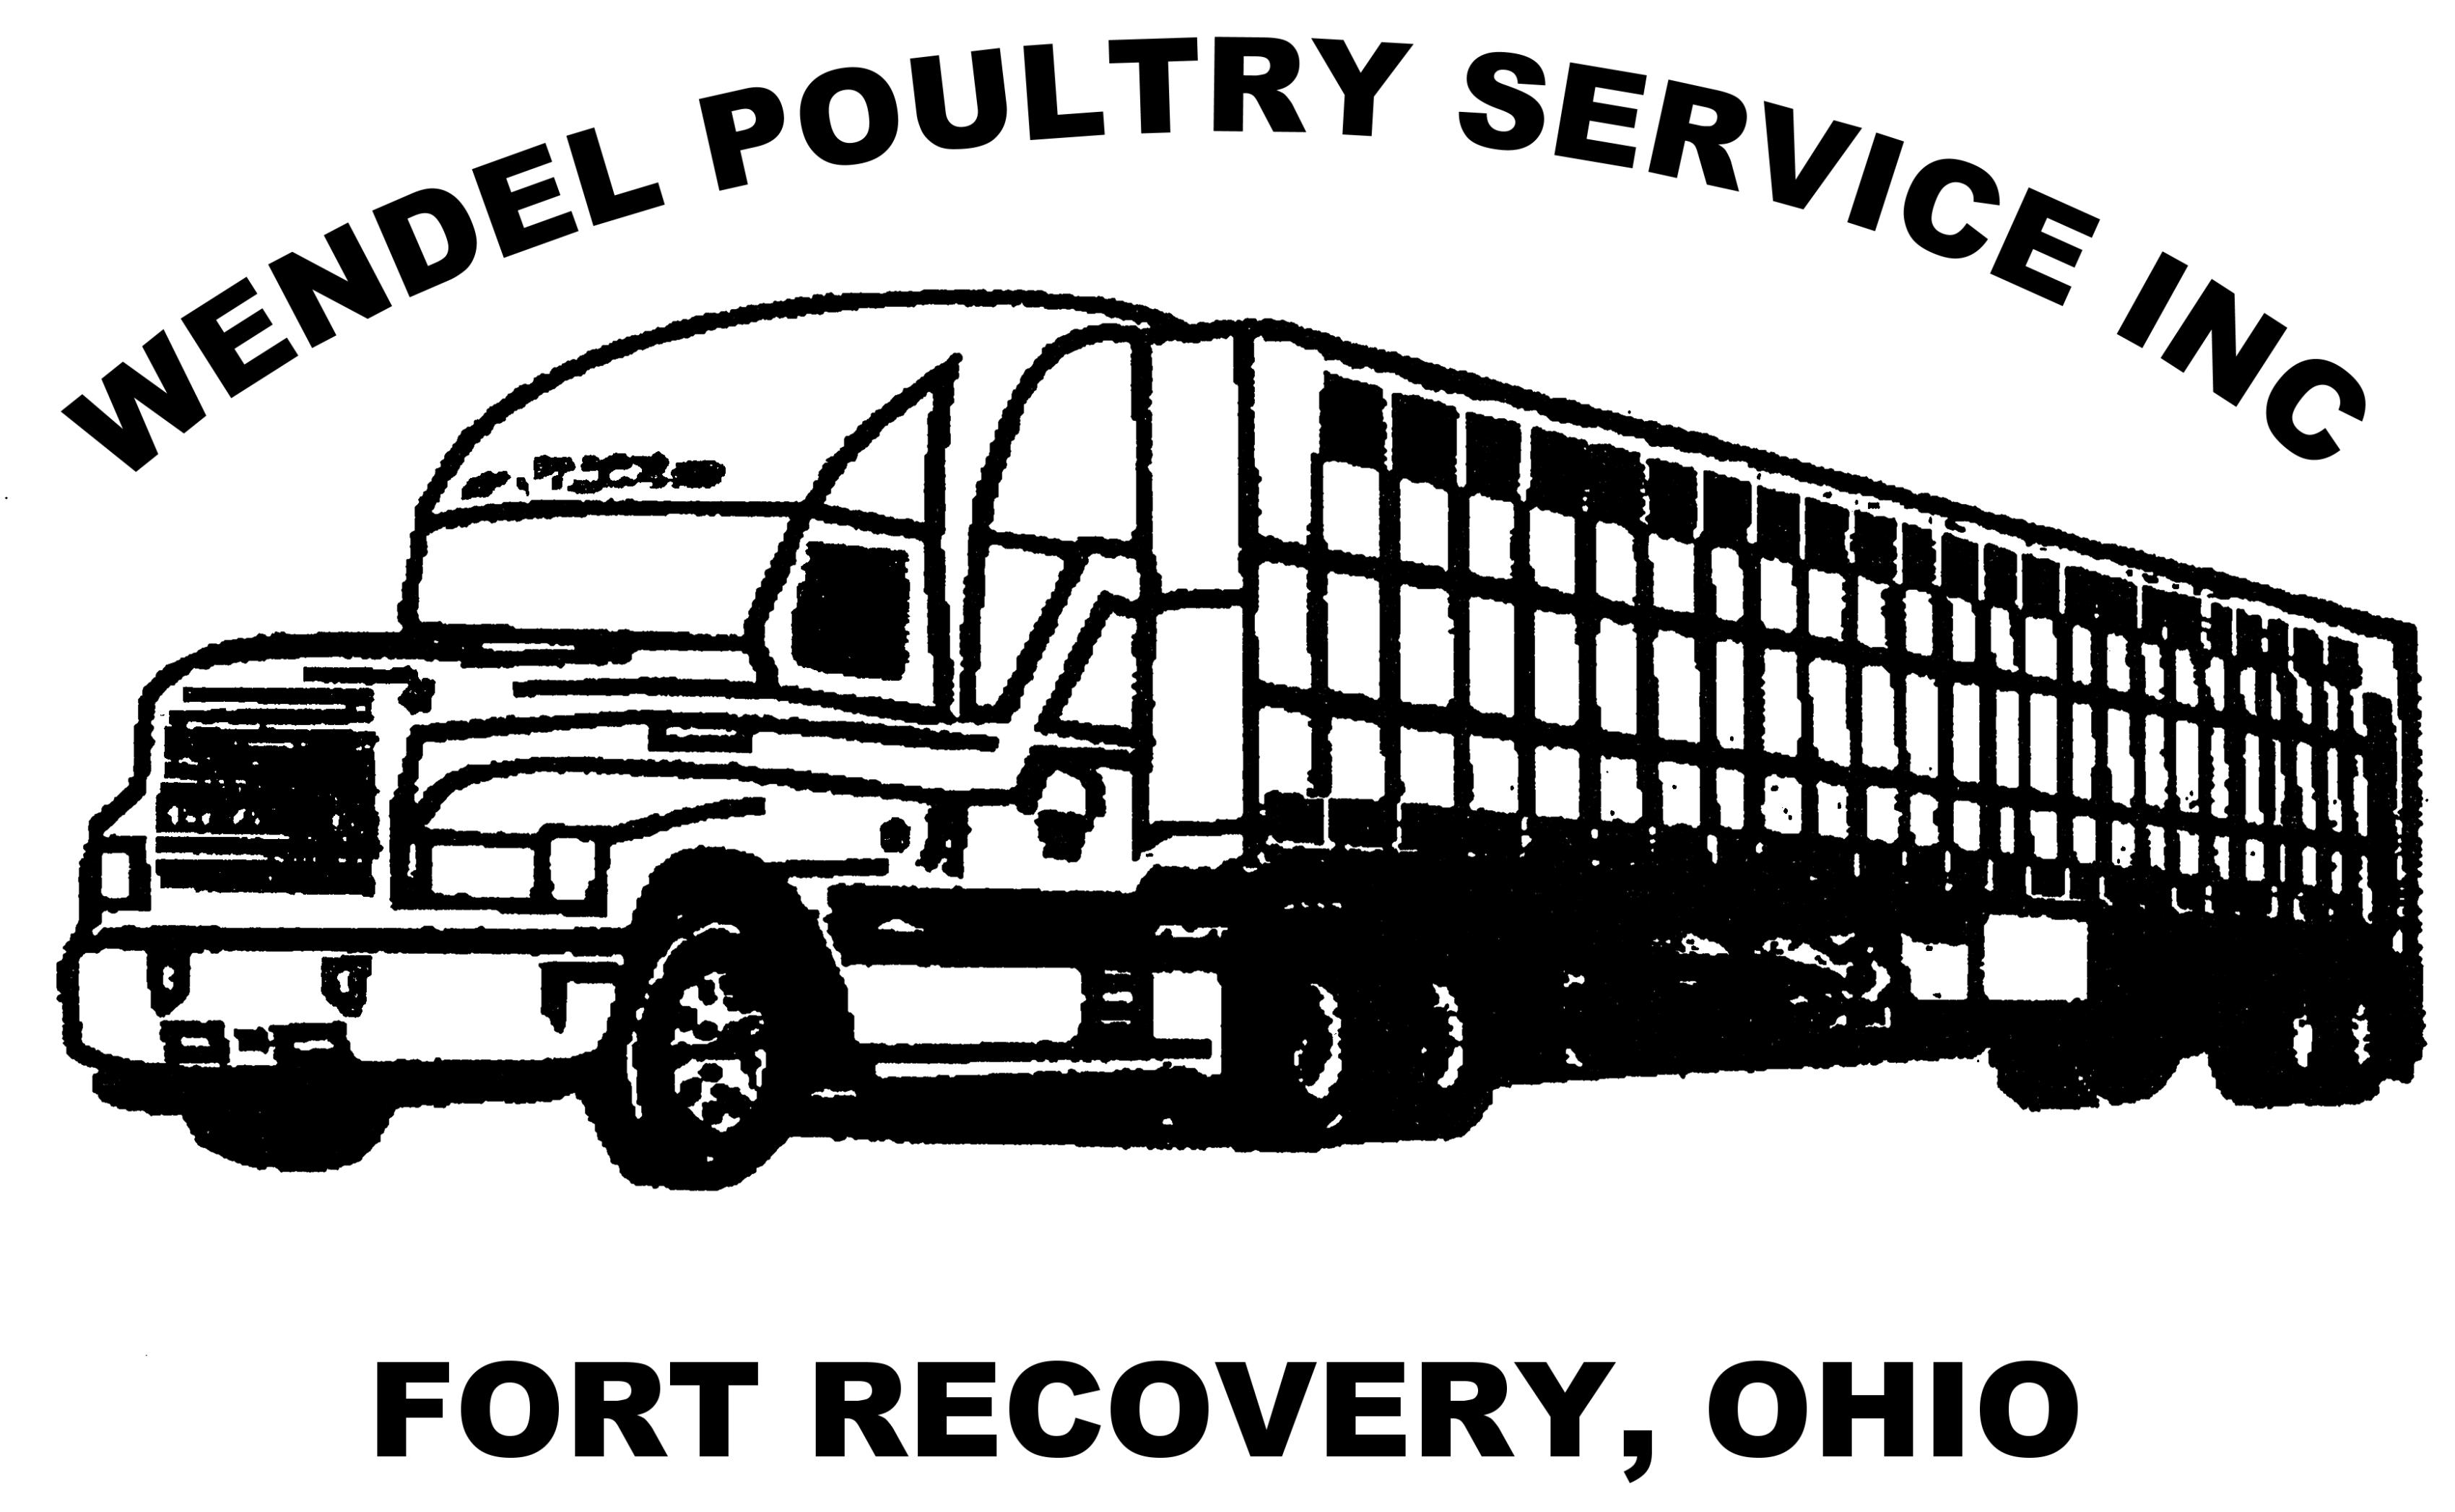 Wendel Poultry Service Inc.